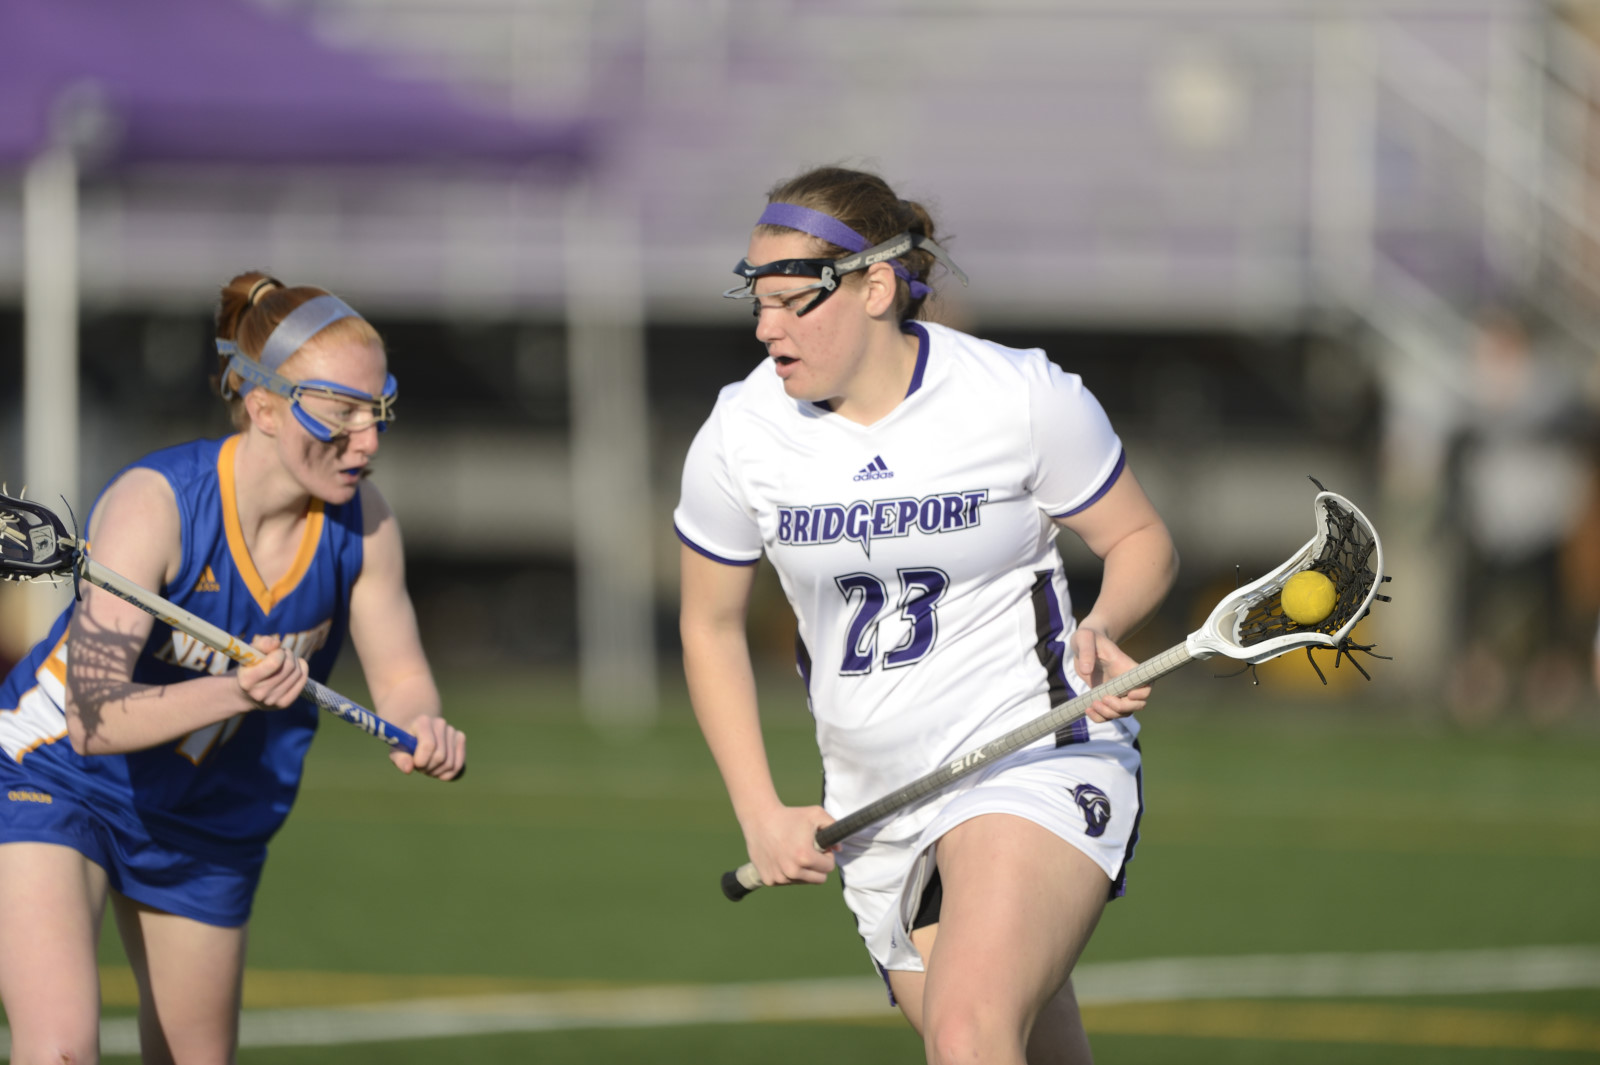 Purple Knights Put On An Offensive Show As Women's Lacrosse Tops AIC, 20-6, In 2019 Season Opener